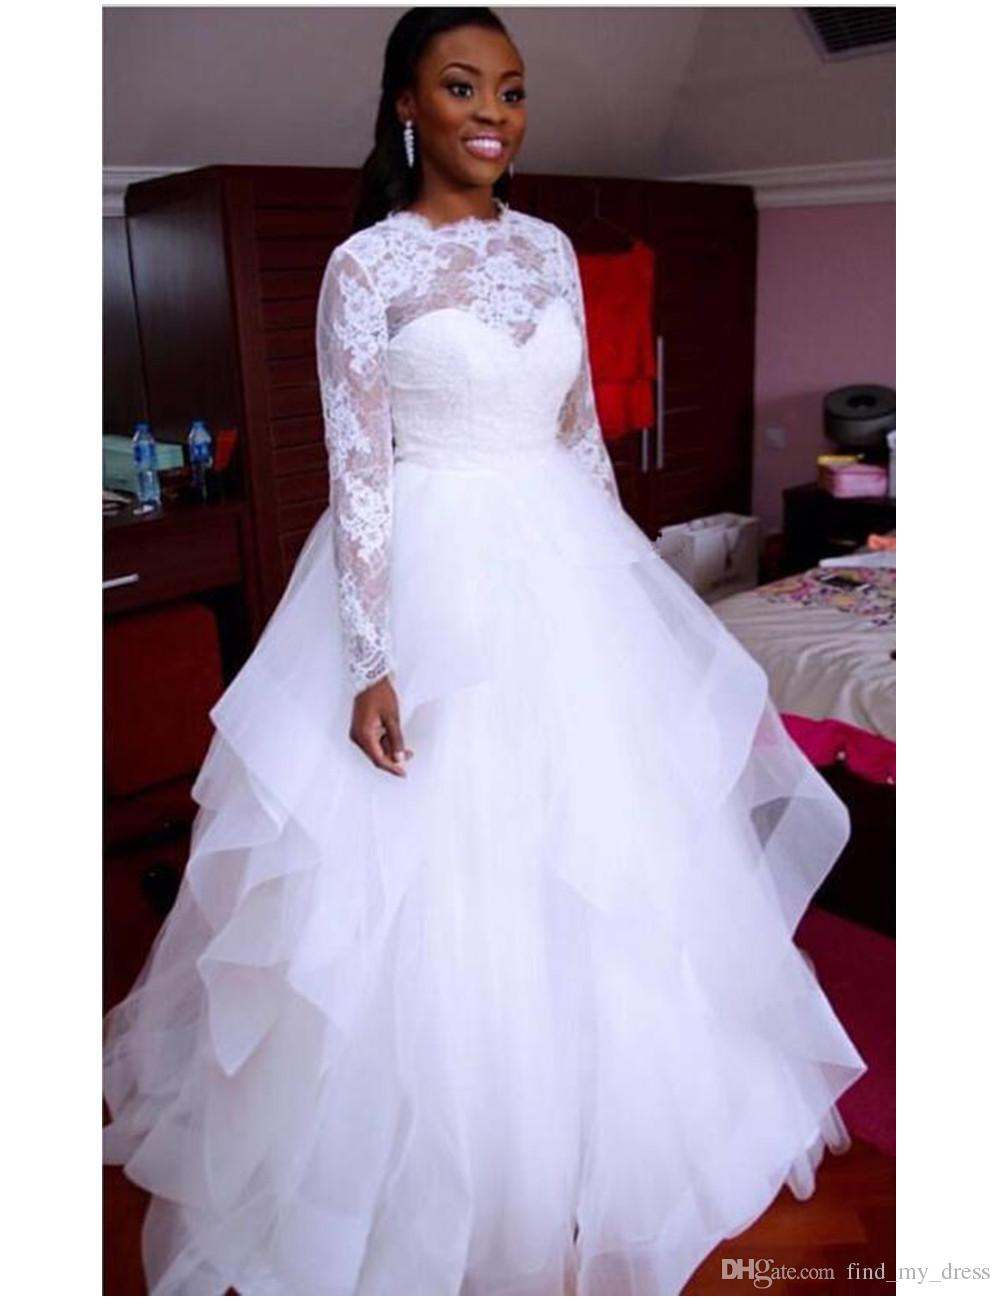 2017 Newest White Ball Gown Wedding Dress Long Sleeve Jewel Neck Lace Ruffles Tulle Floor Length